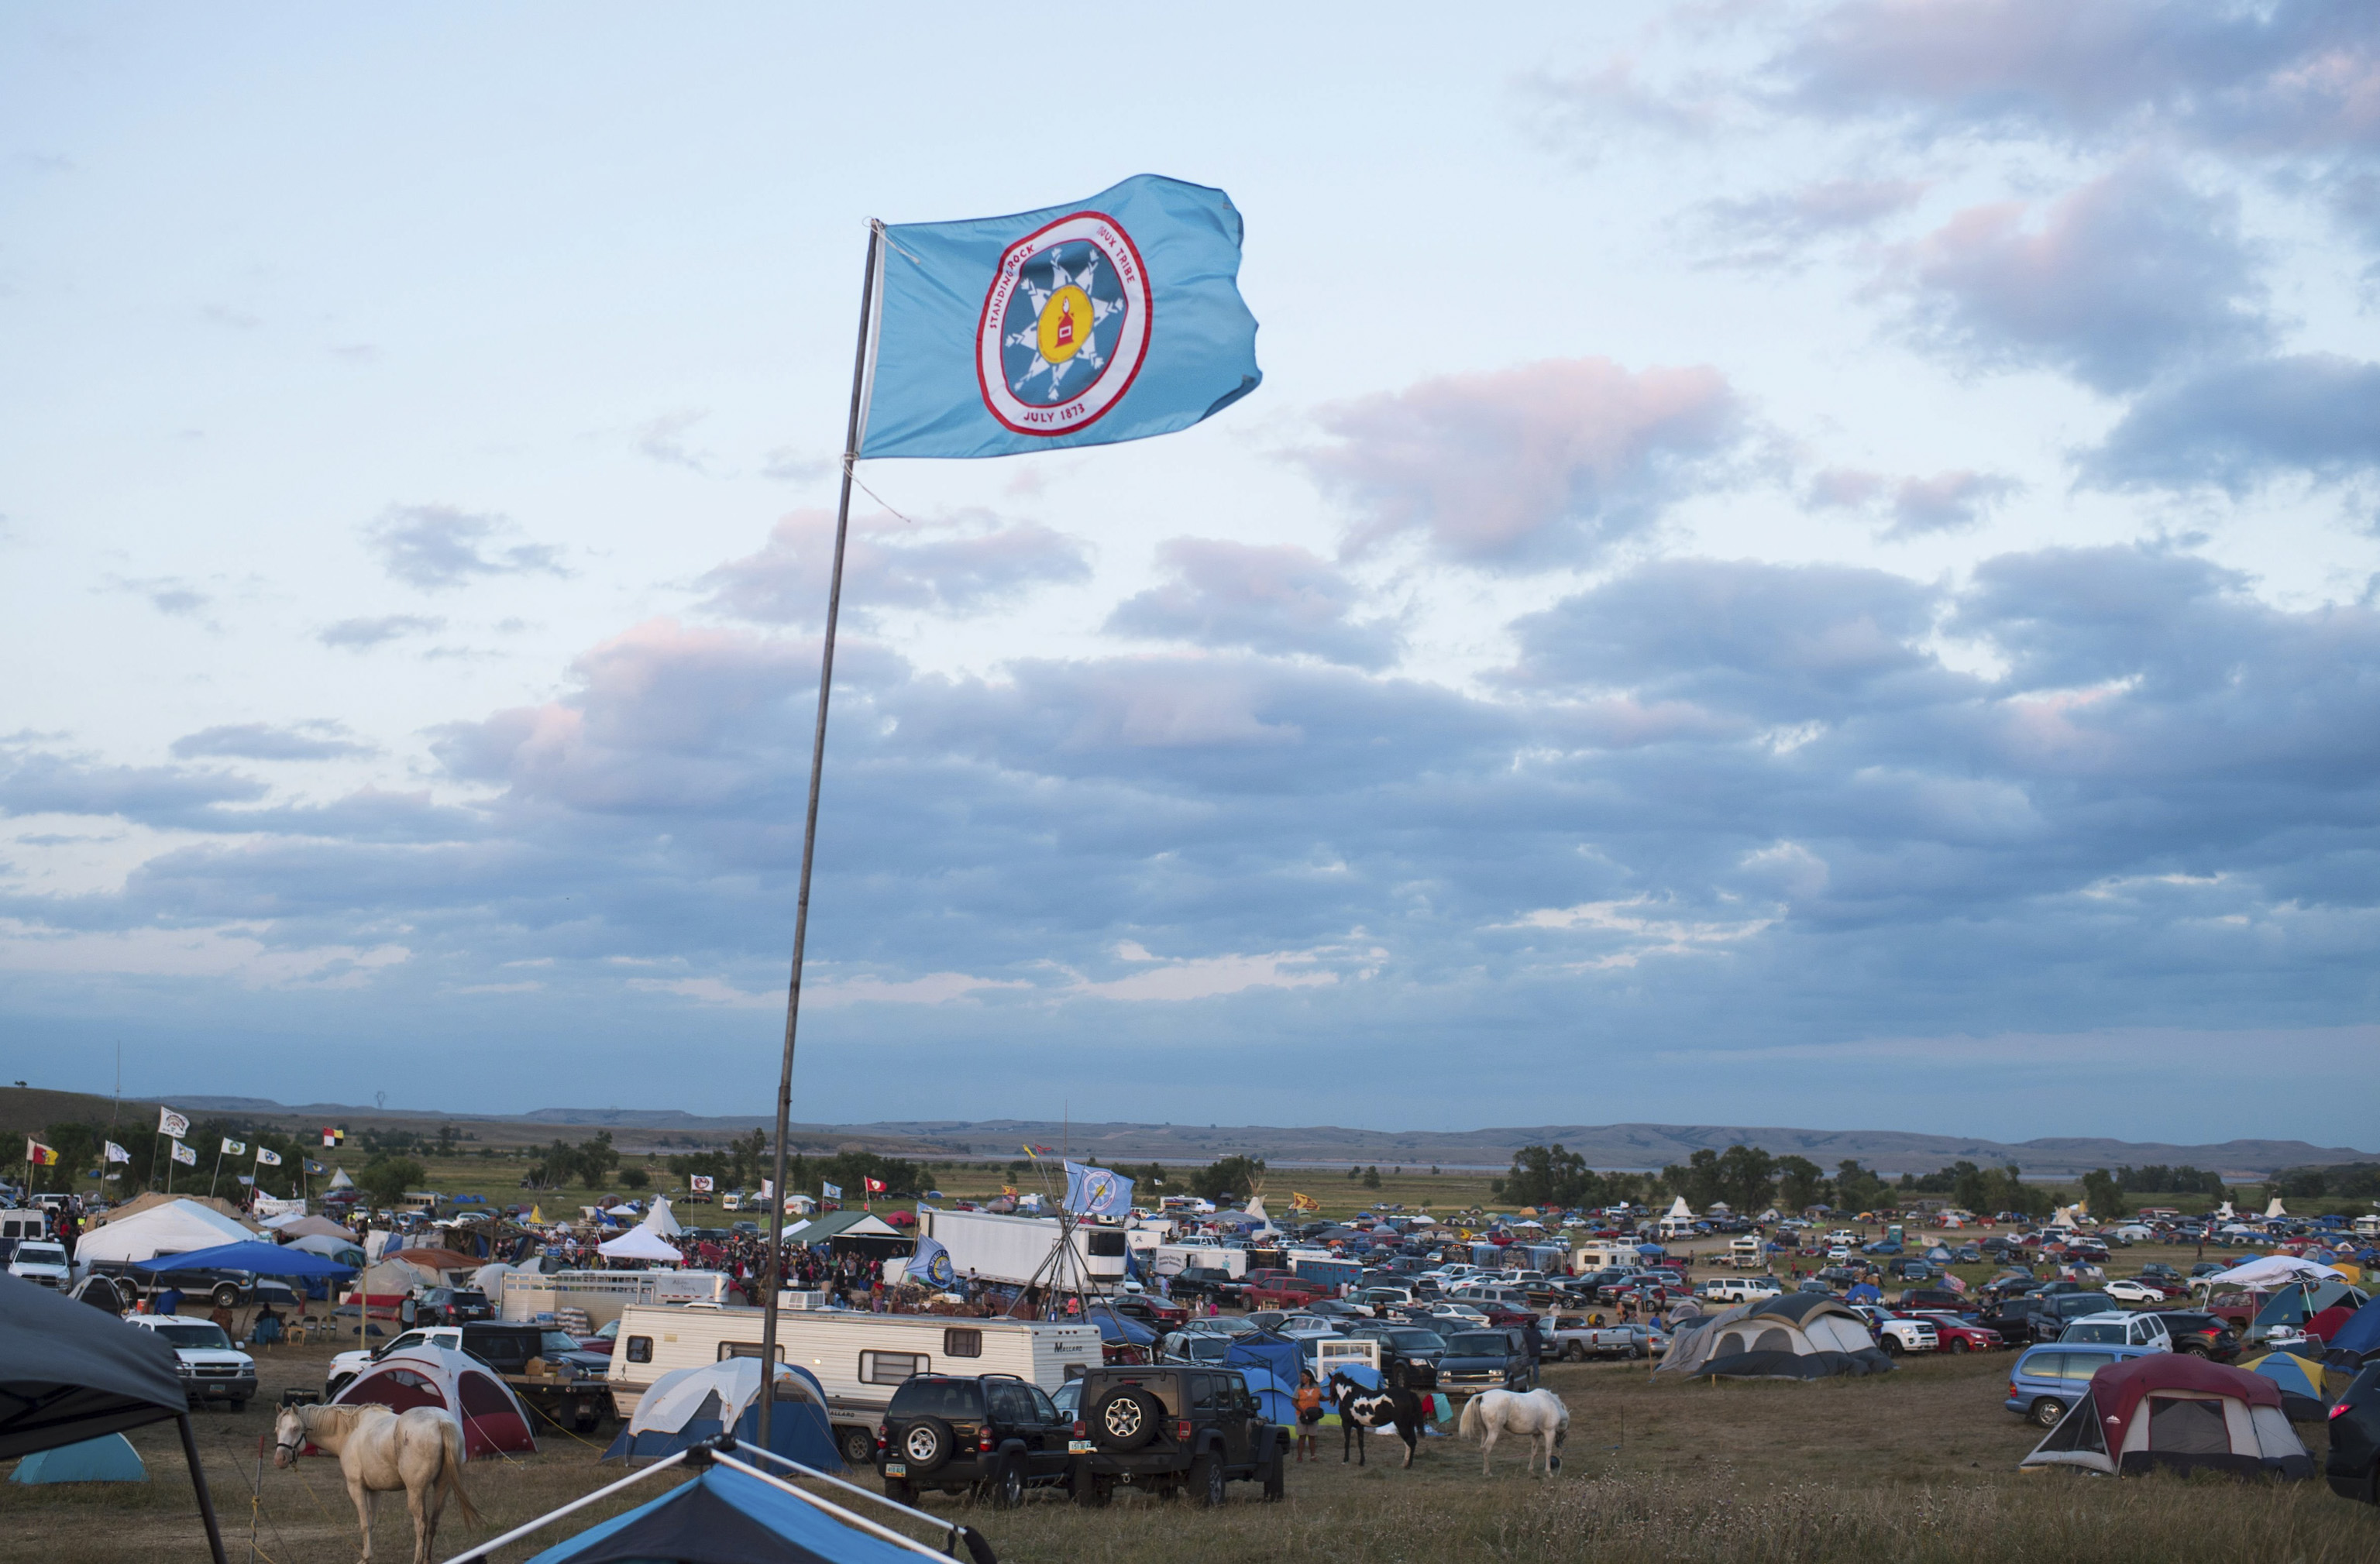 A Standing Rock Sioux flag flies over a protest encampment near Cannon Ball, North Dakota, on Sept. 3, 2016.